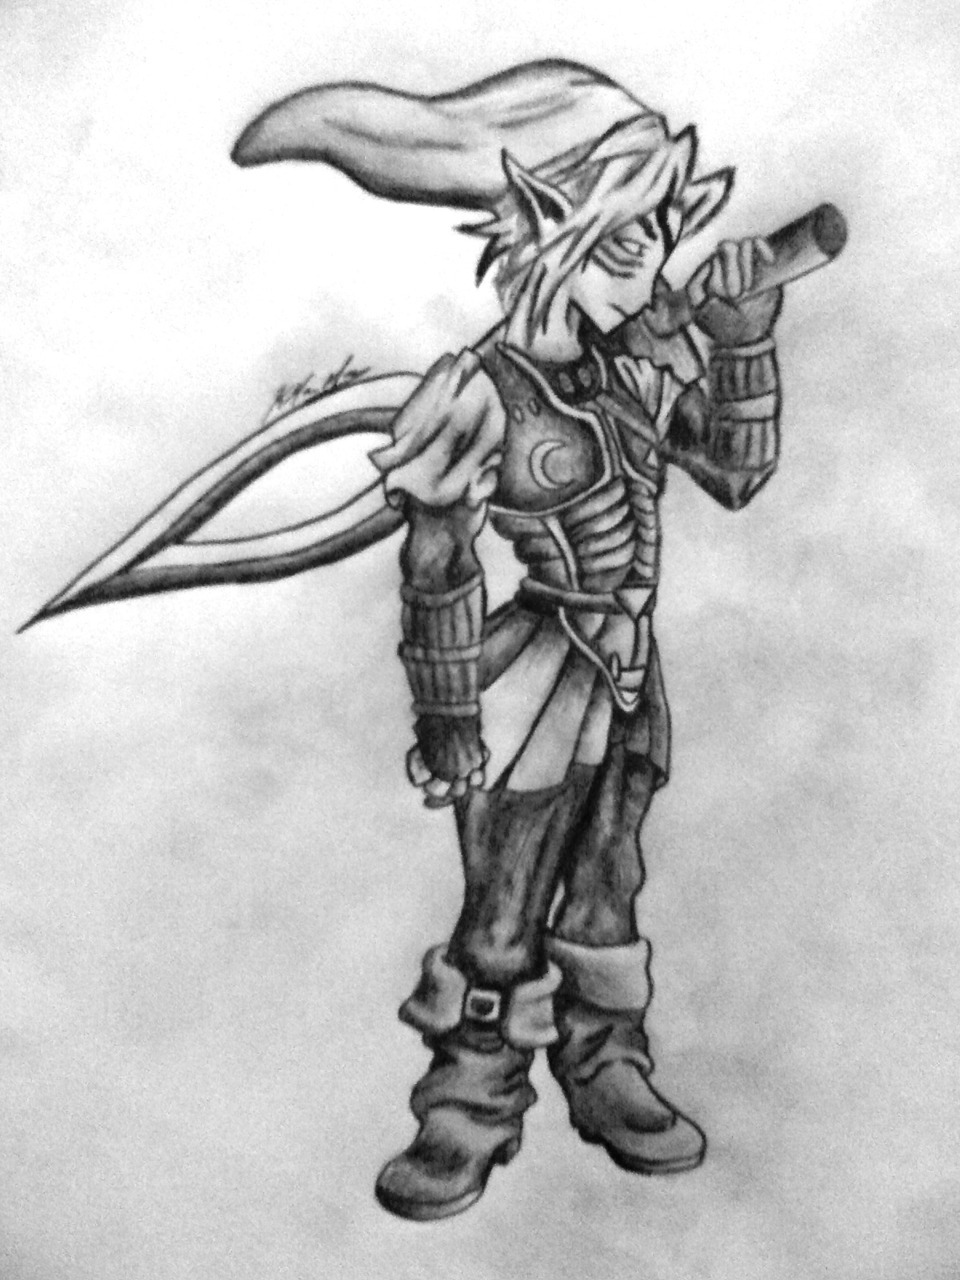 Fierce Deity Link, done in pencil.